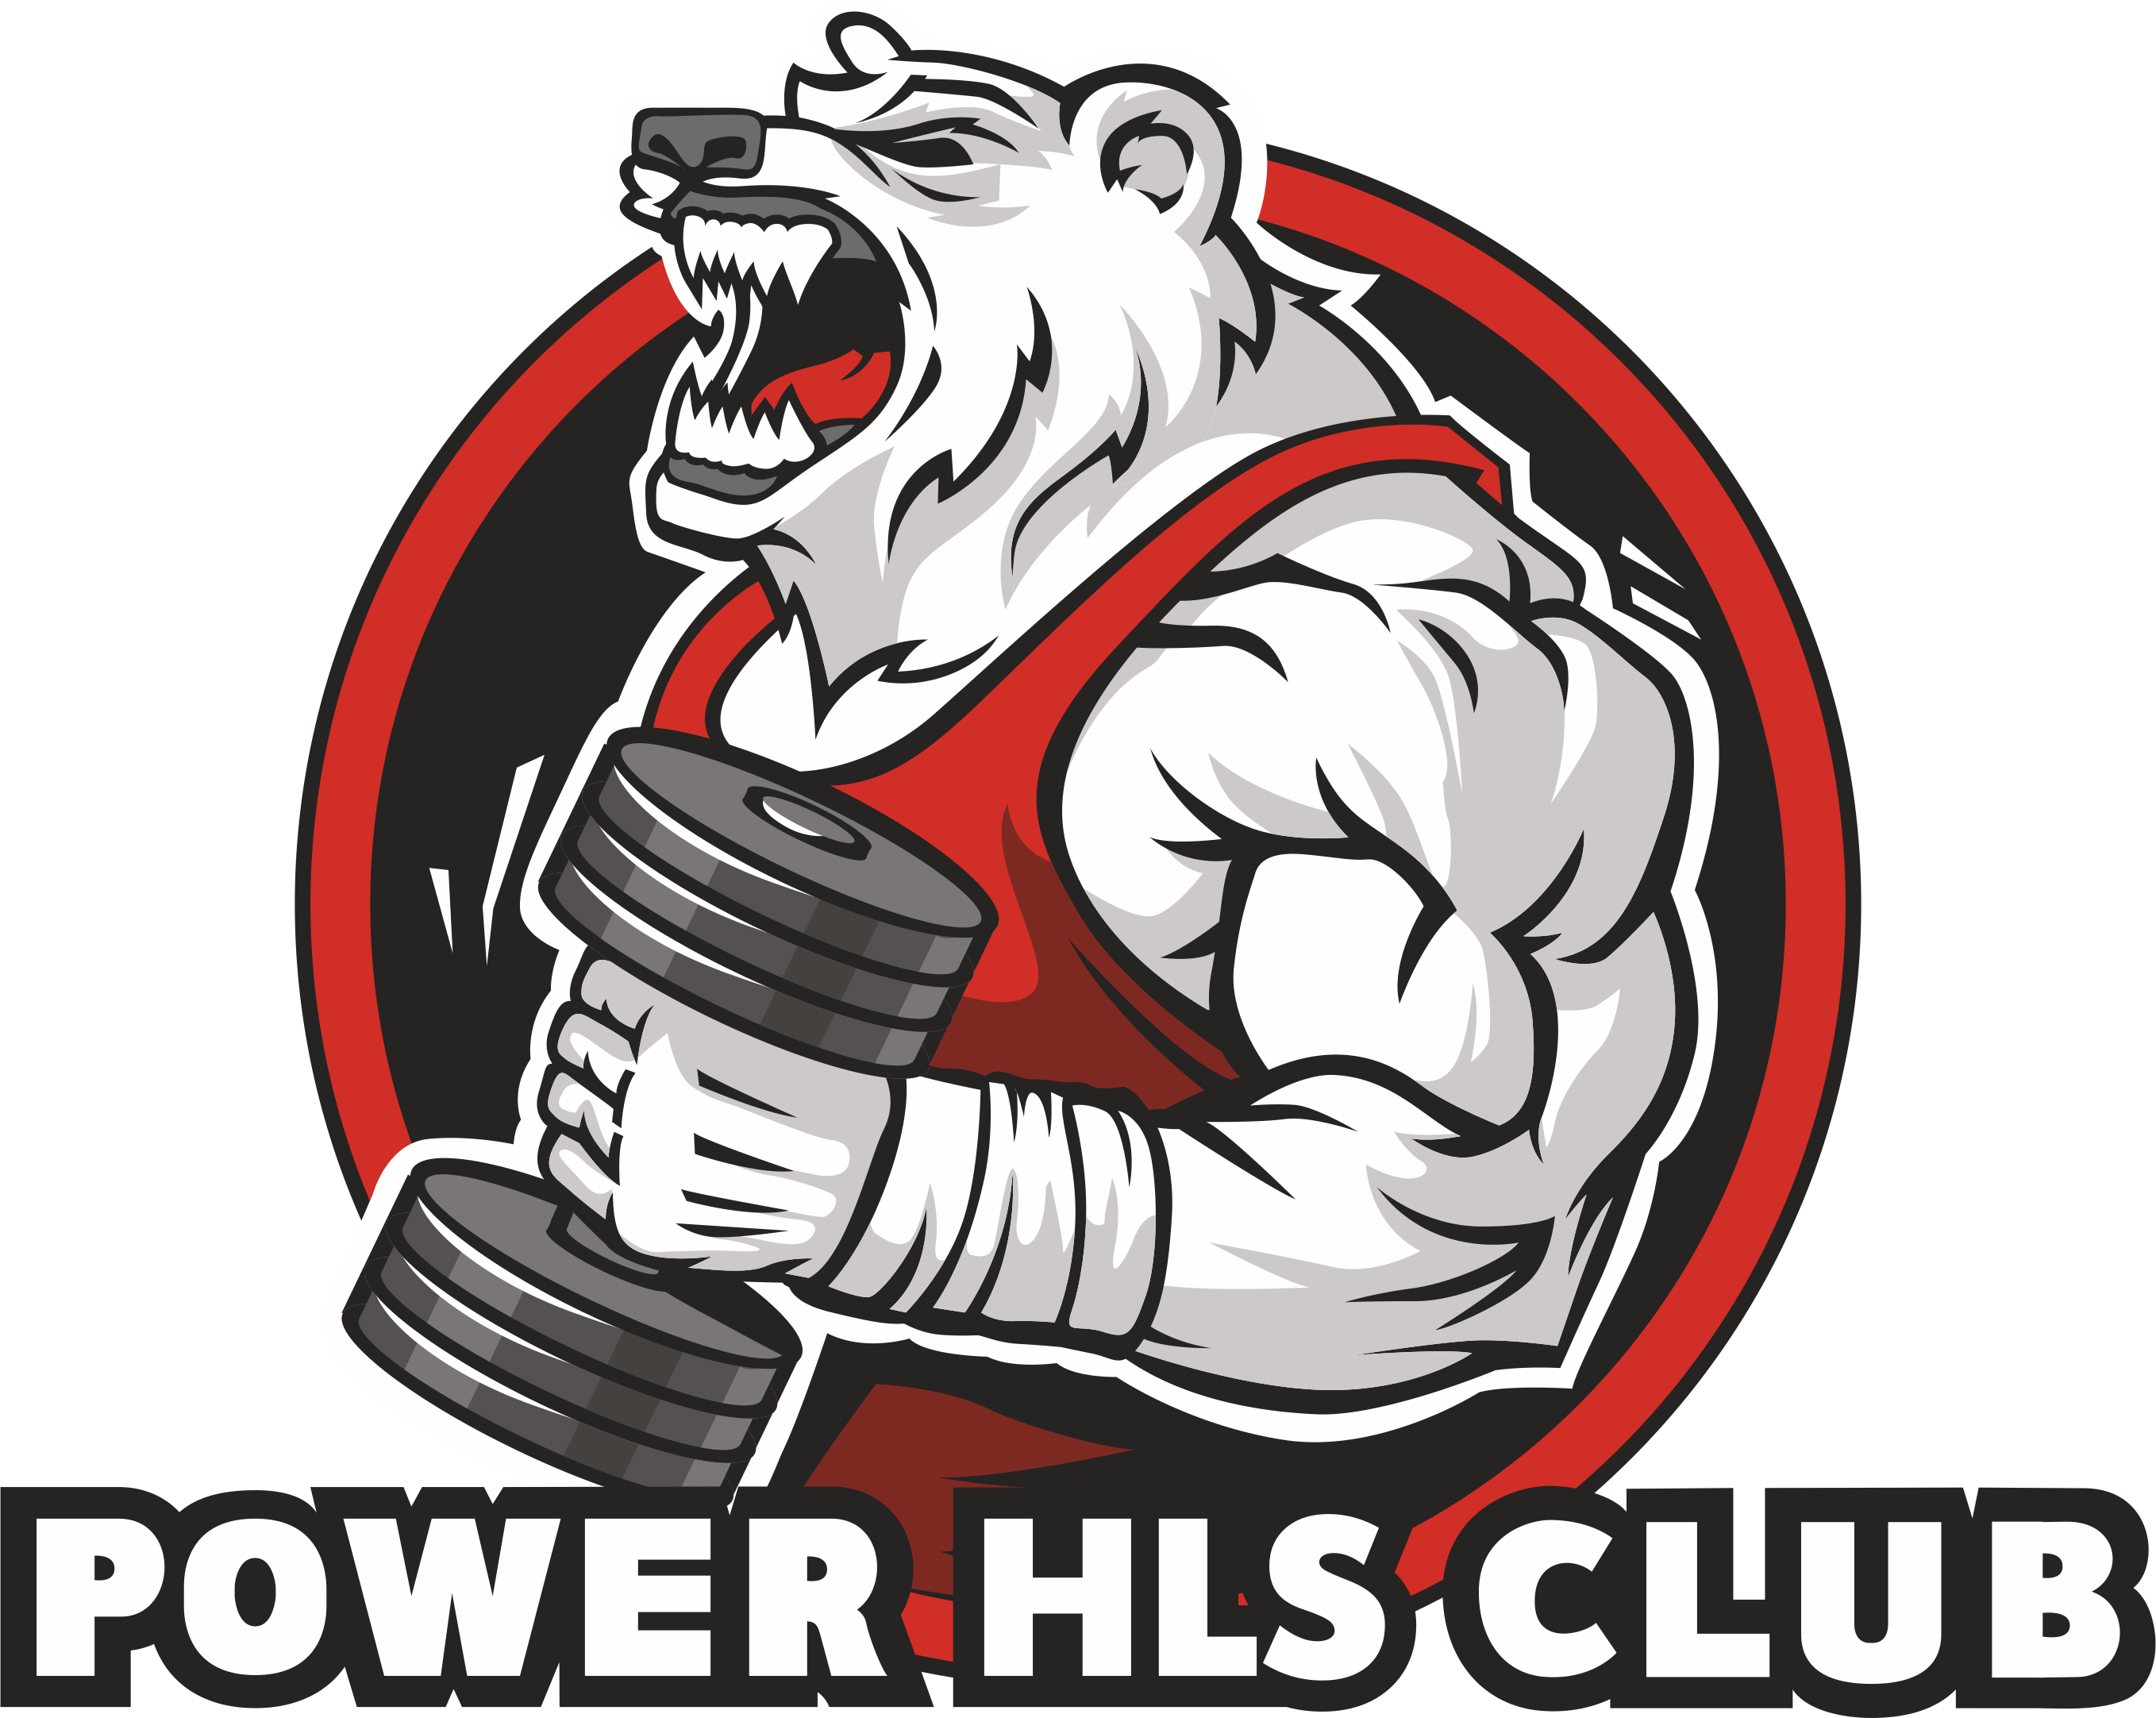 POWER HLS CLUB